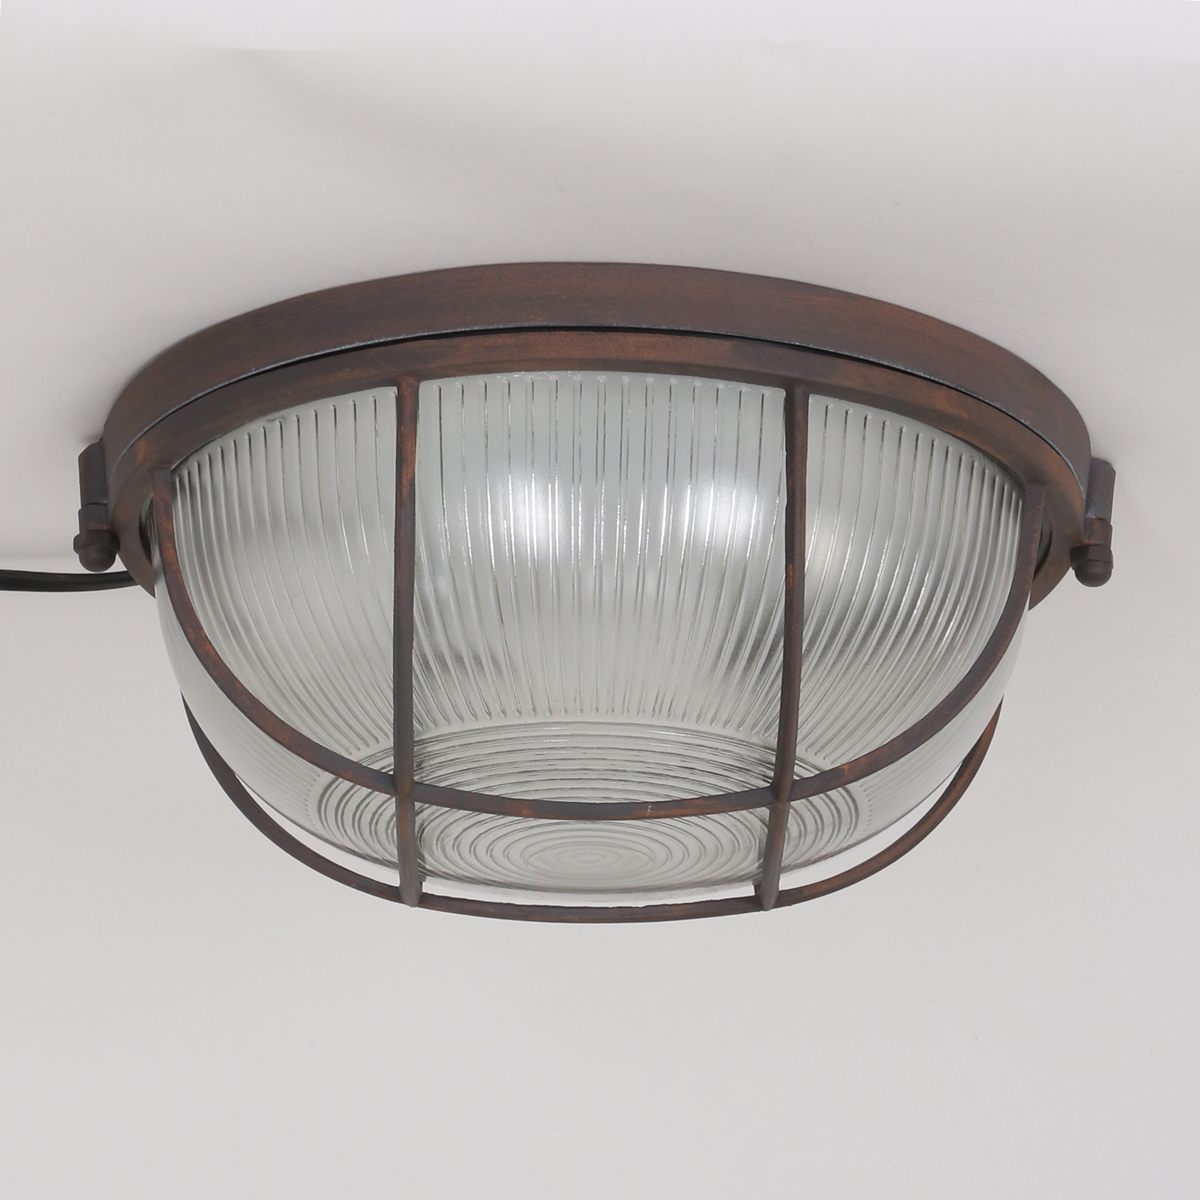 Stoere ronde plafondlamp chinny bruin industriele lampen for Stoere plafondlamp